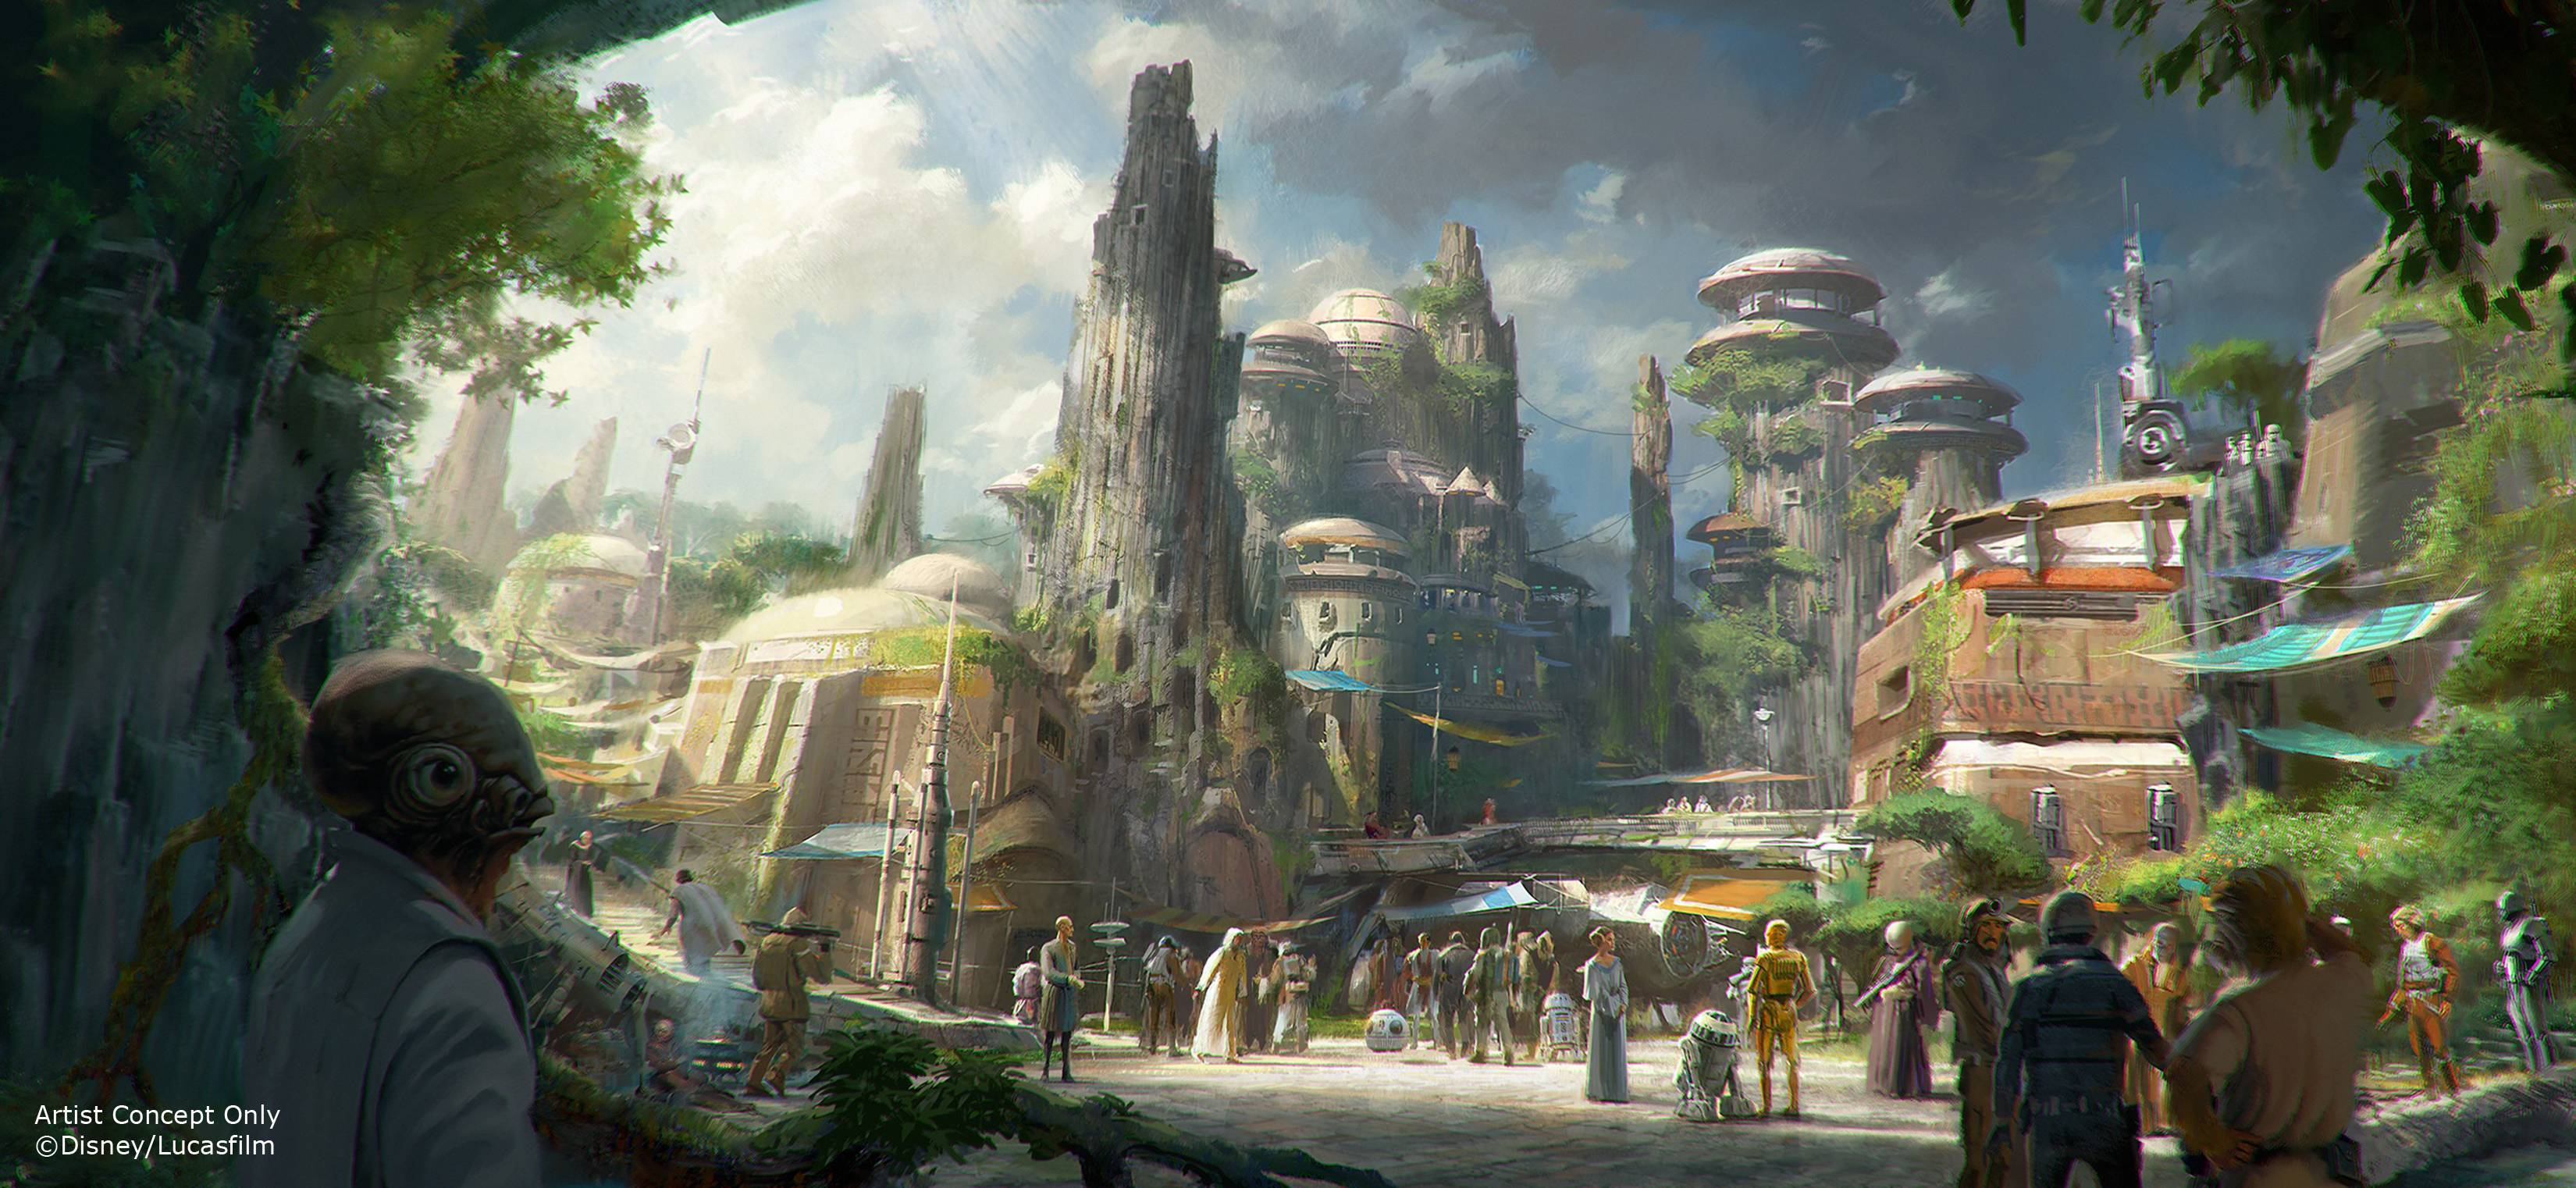 Star Wars Land coming to Disney World and Disneyland